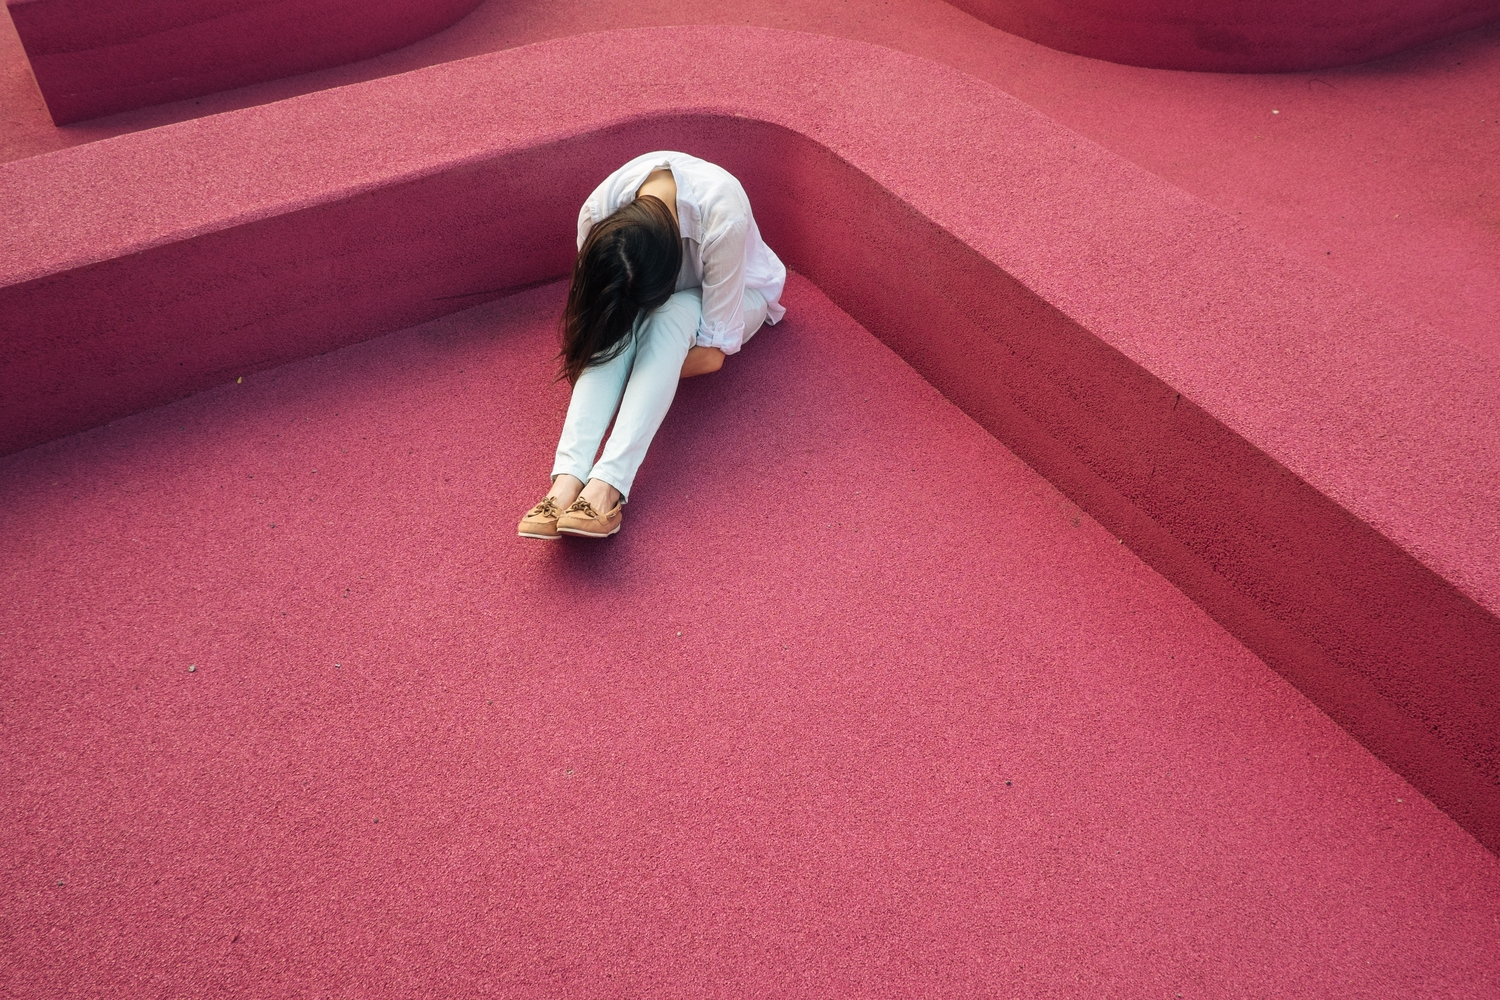 Woman crouched over amidst a pink background